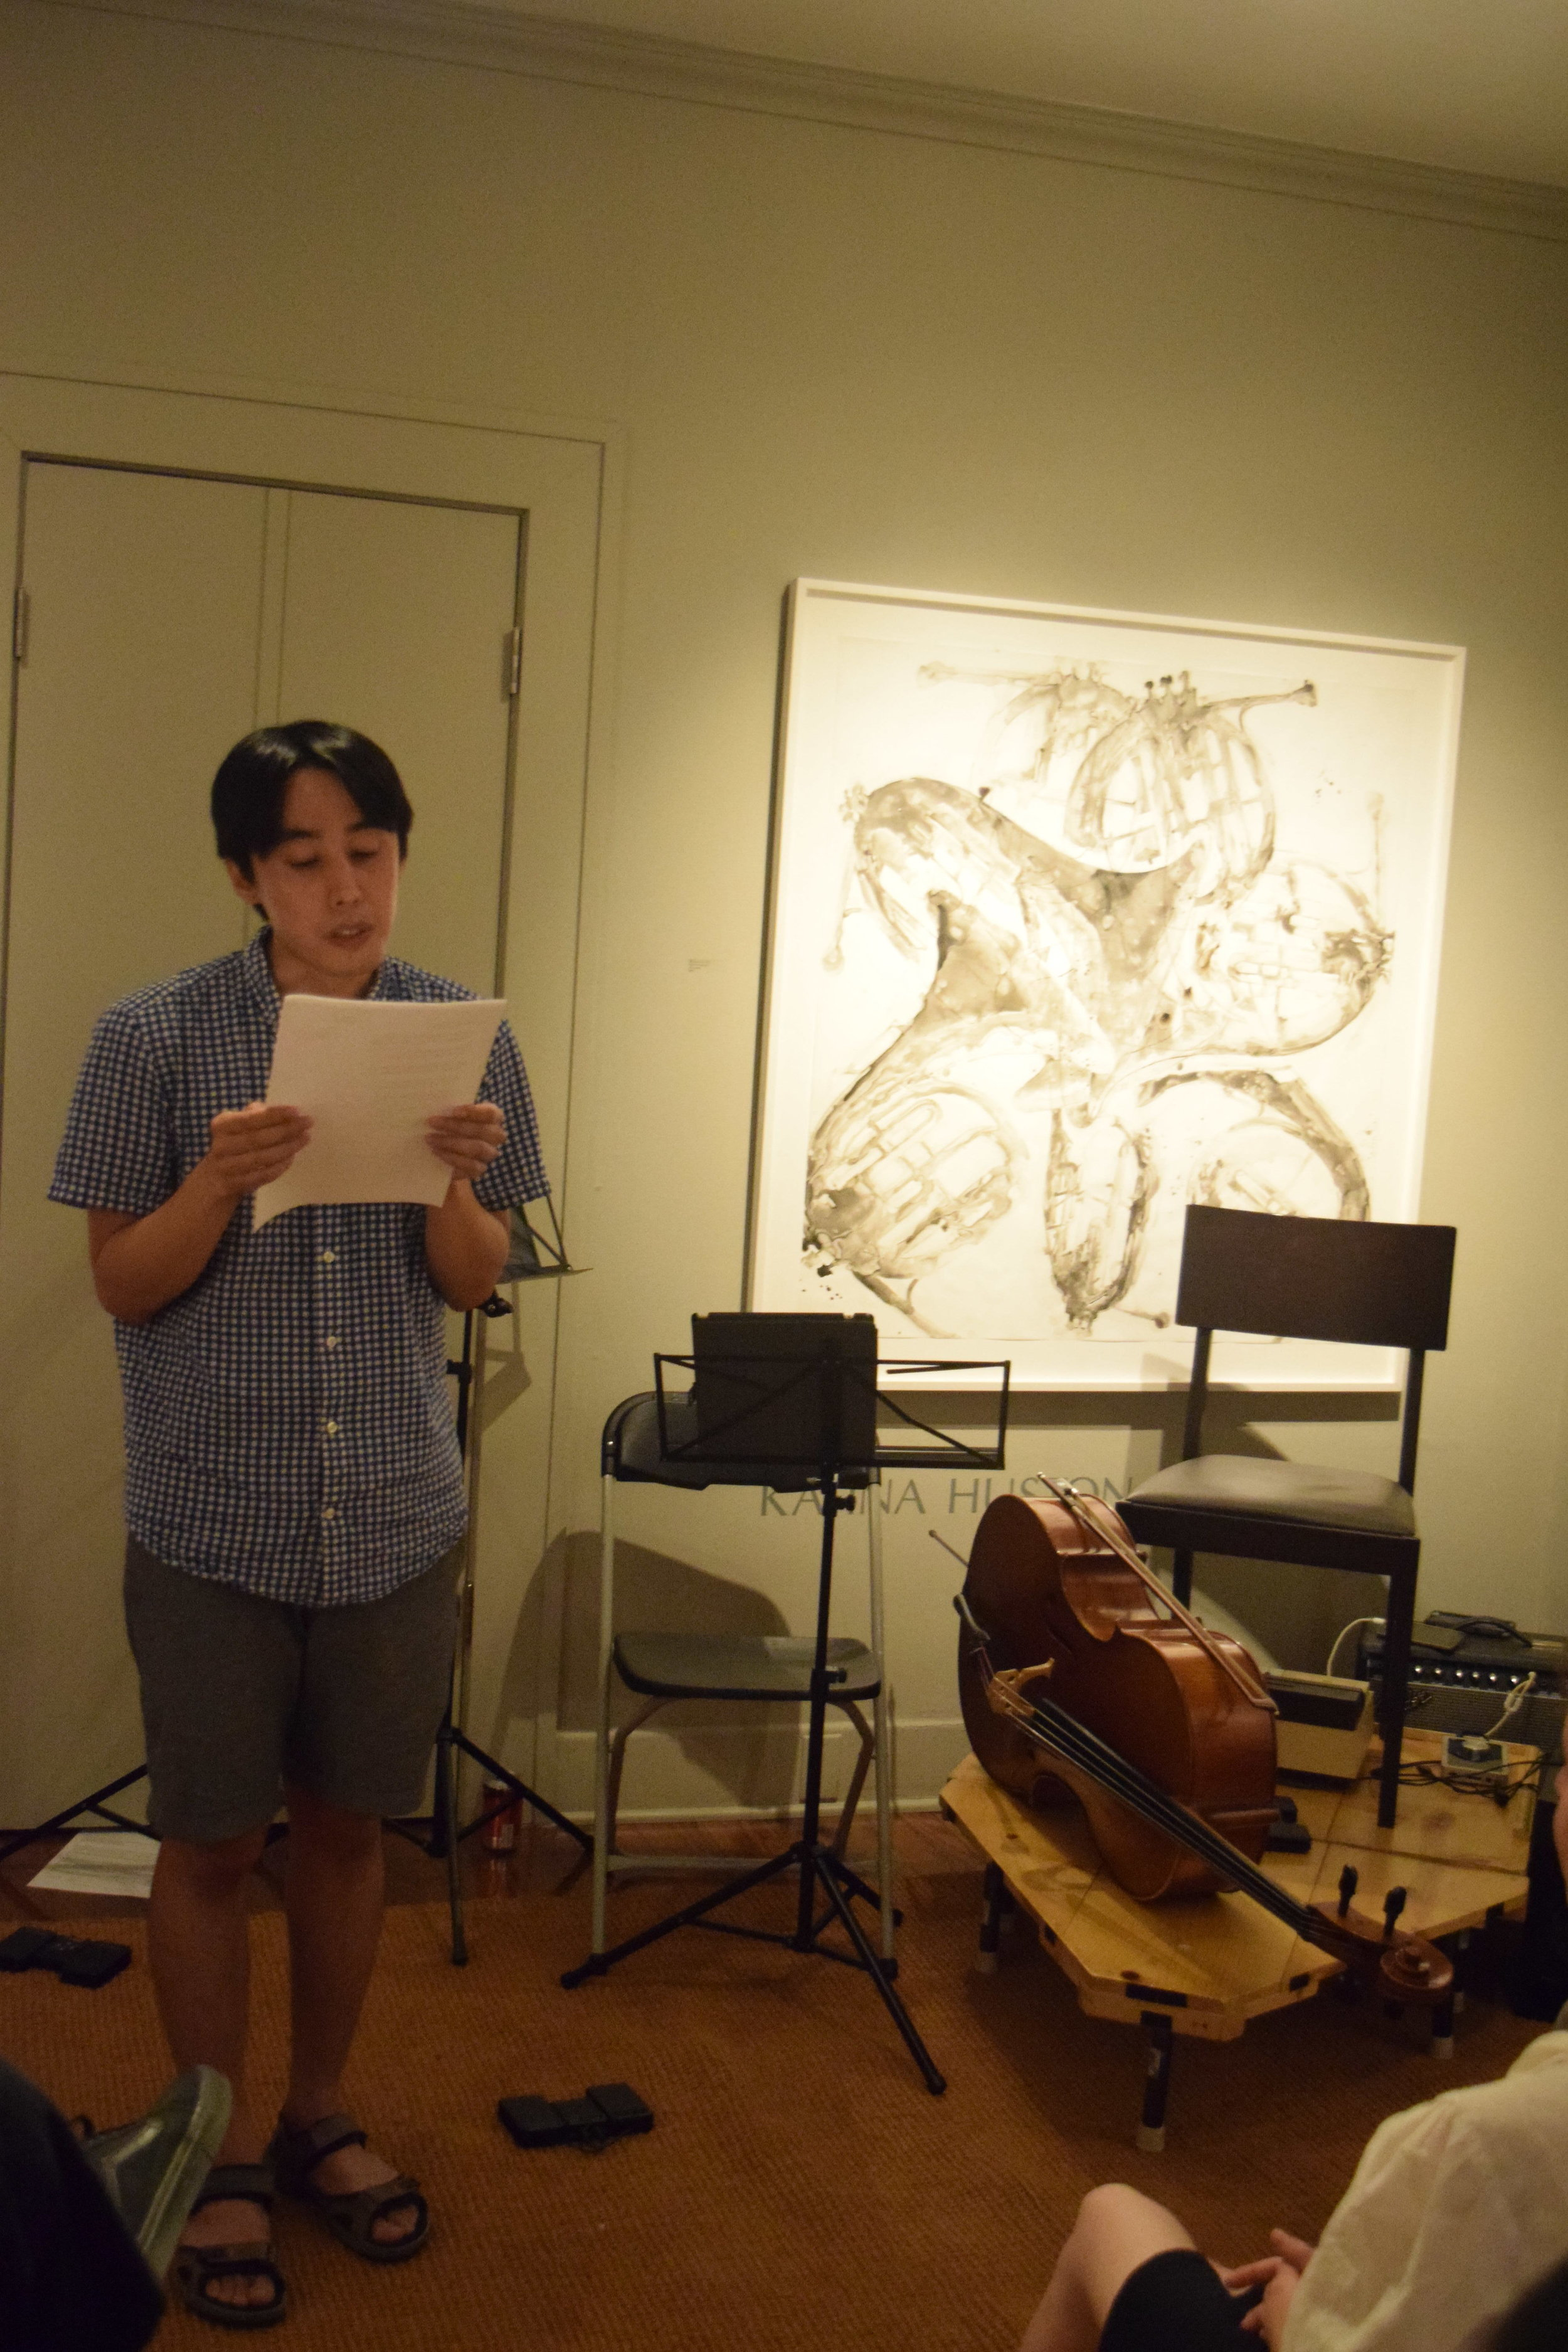 Yuki Tanaka is an MFA student at the Michener Center for Writers at University of Texas at Austin, where he also serves as poetry editor of Bat City Review.